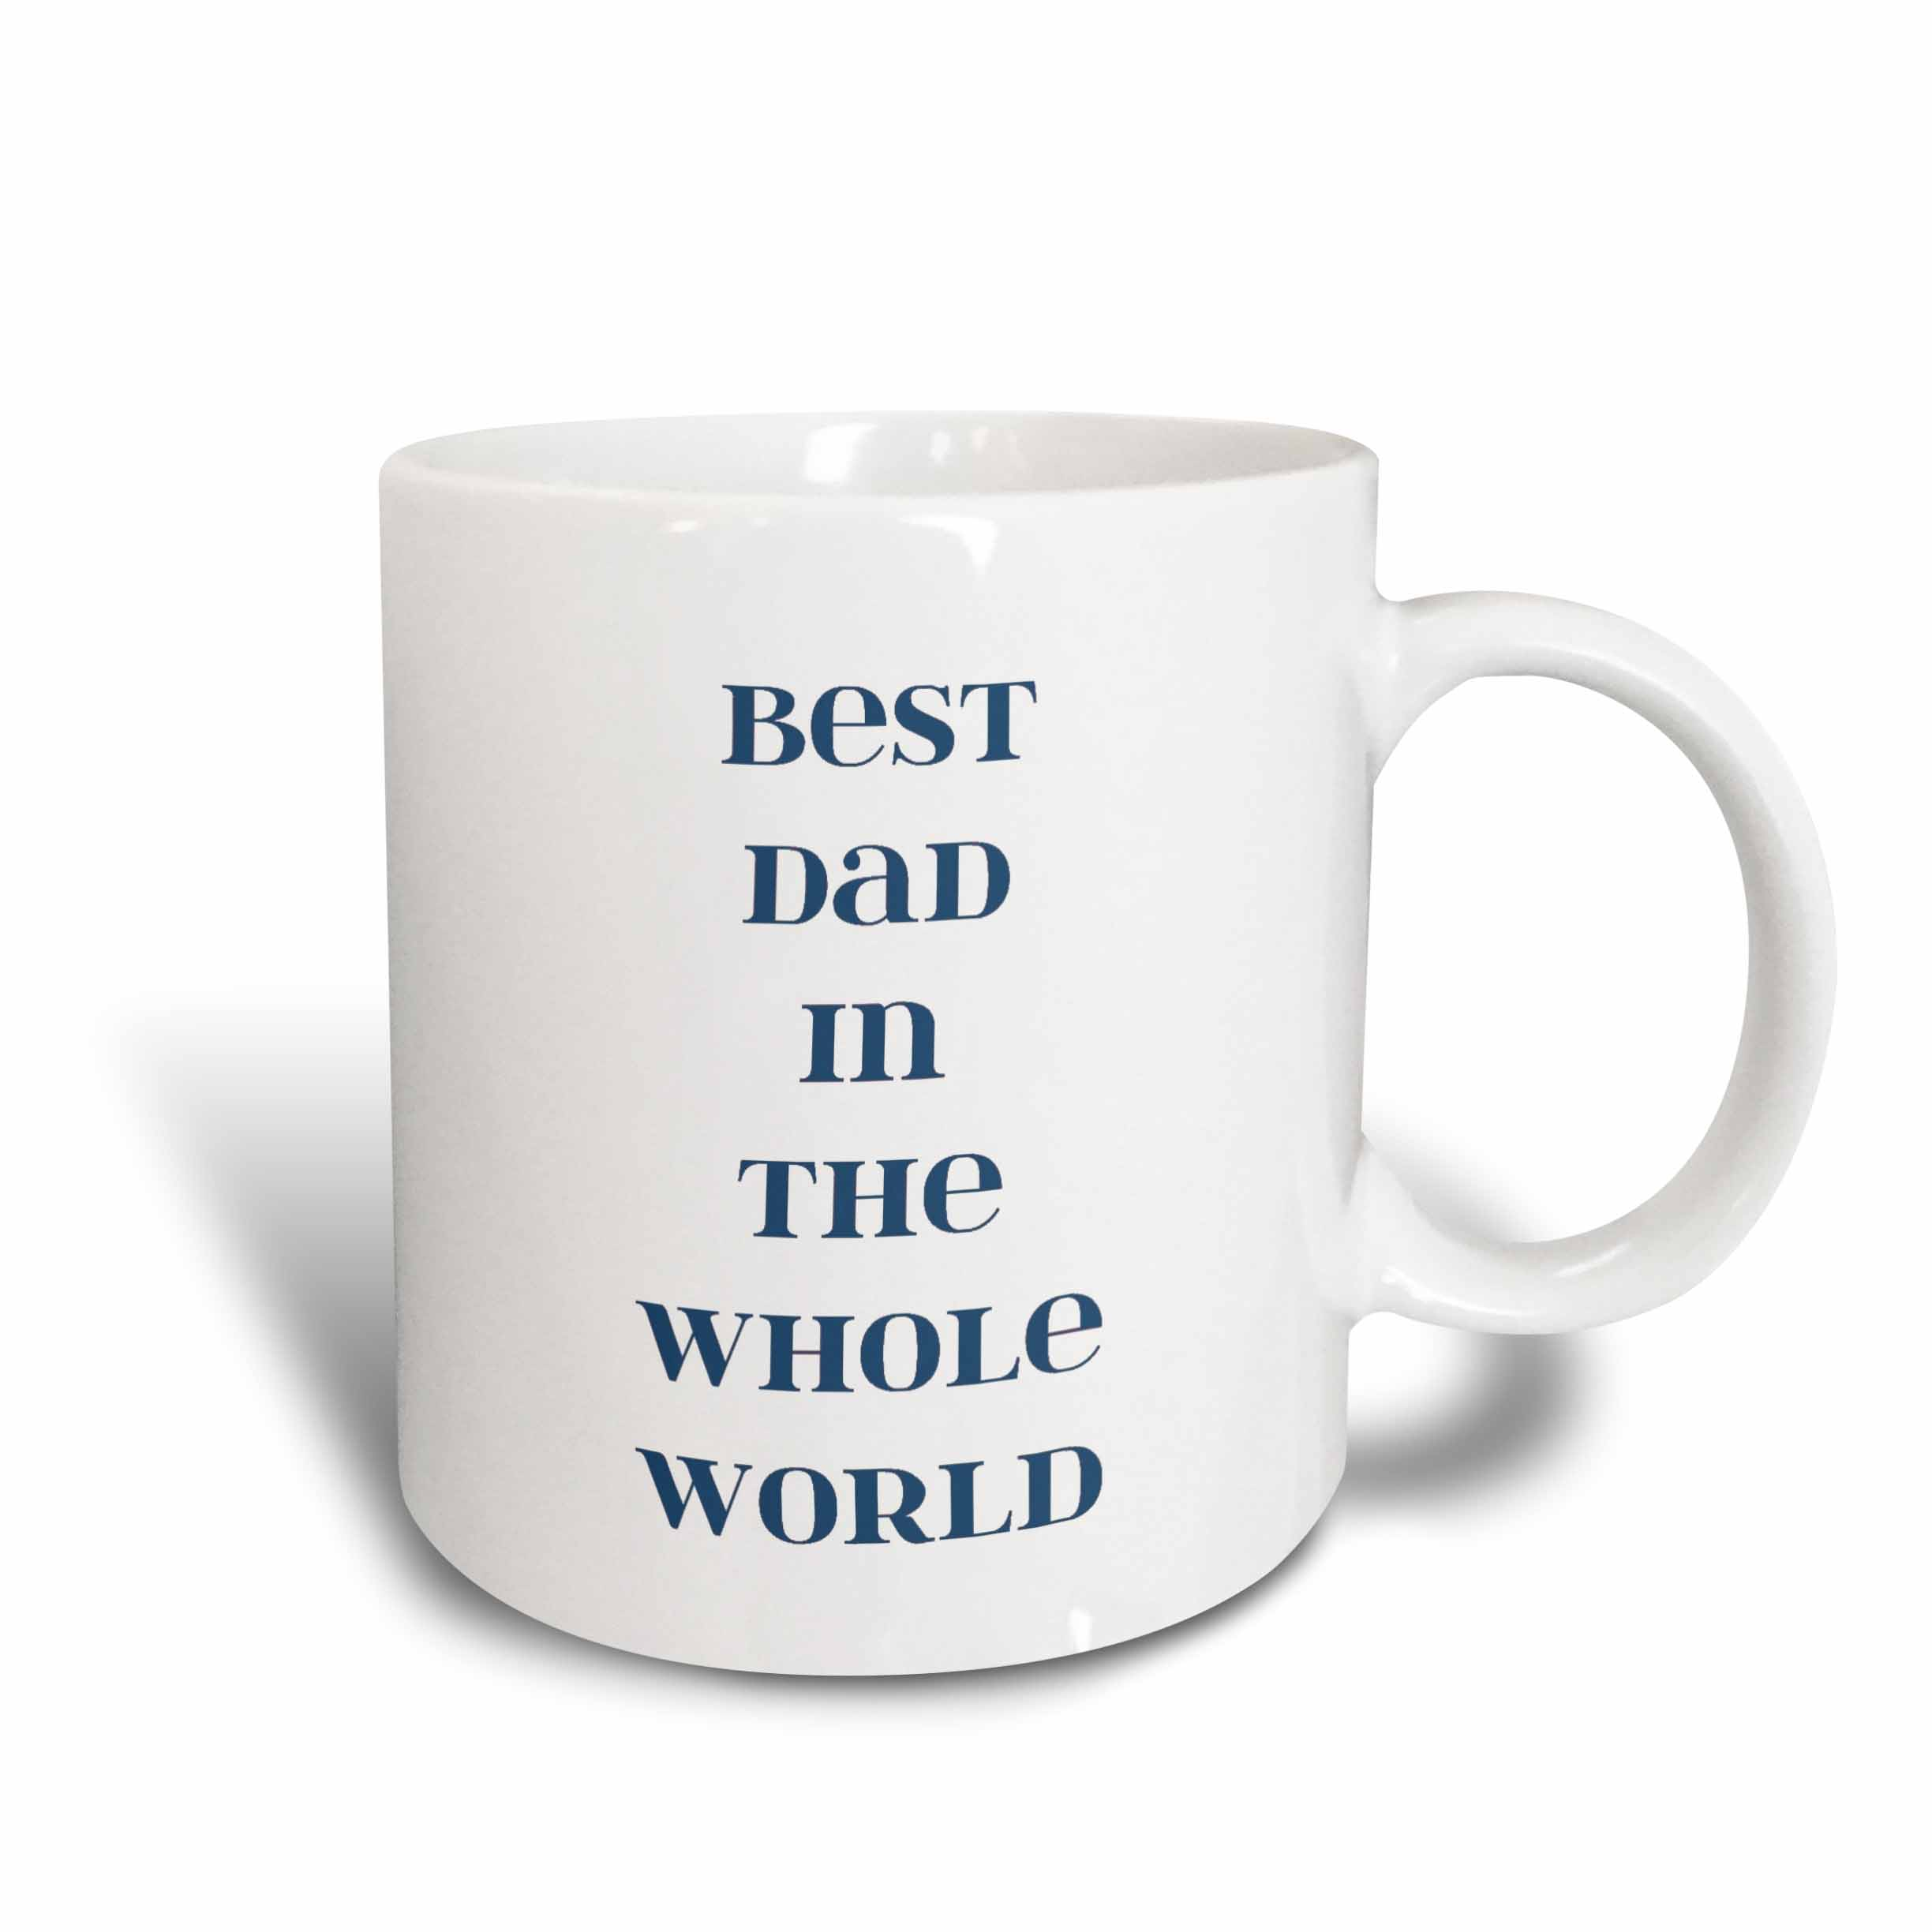 3dRose Best Dad in the World Fathers Day Words, Ceramic Mug, 11-ounce by 3dRose